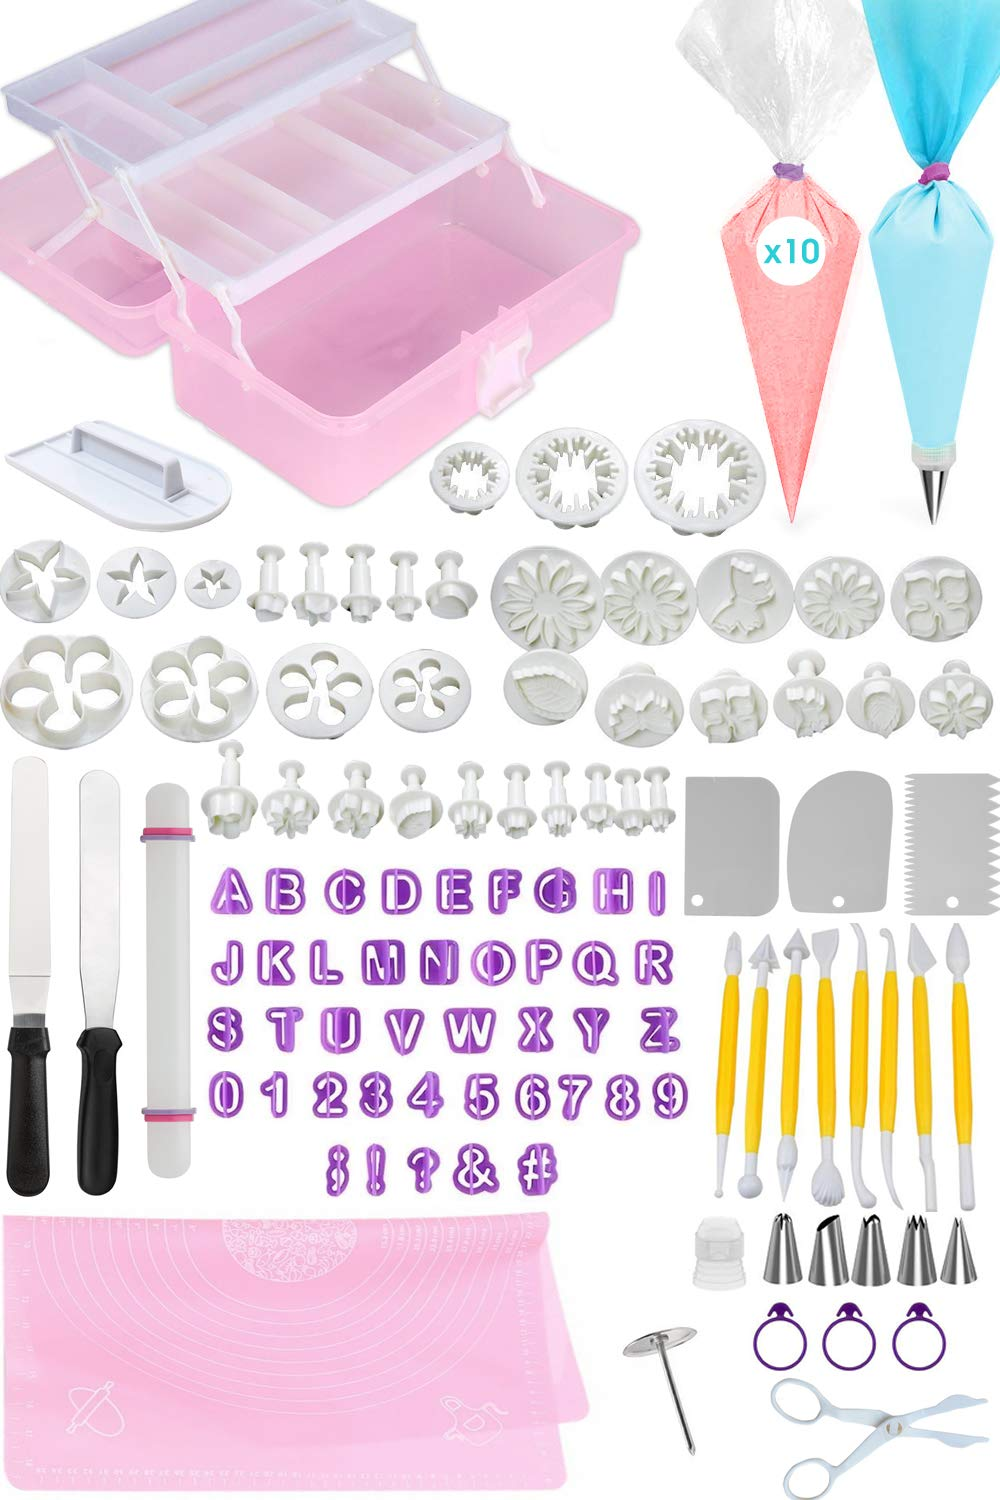 FONDANT TOOLS CAKE DECORATING SUPPLIES - 116pc baking kit, Icing Piping Bags, tips, 2 offset spatula, letter and shape cutters, baking mat, rolling pin, pastry, cookie, cupcake & frosting accessories by Cakes of Eden